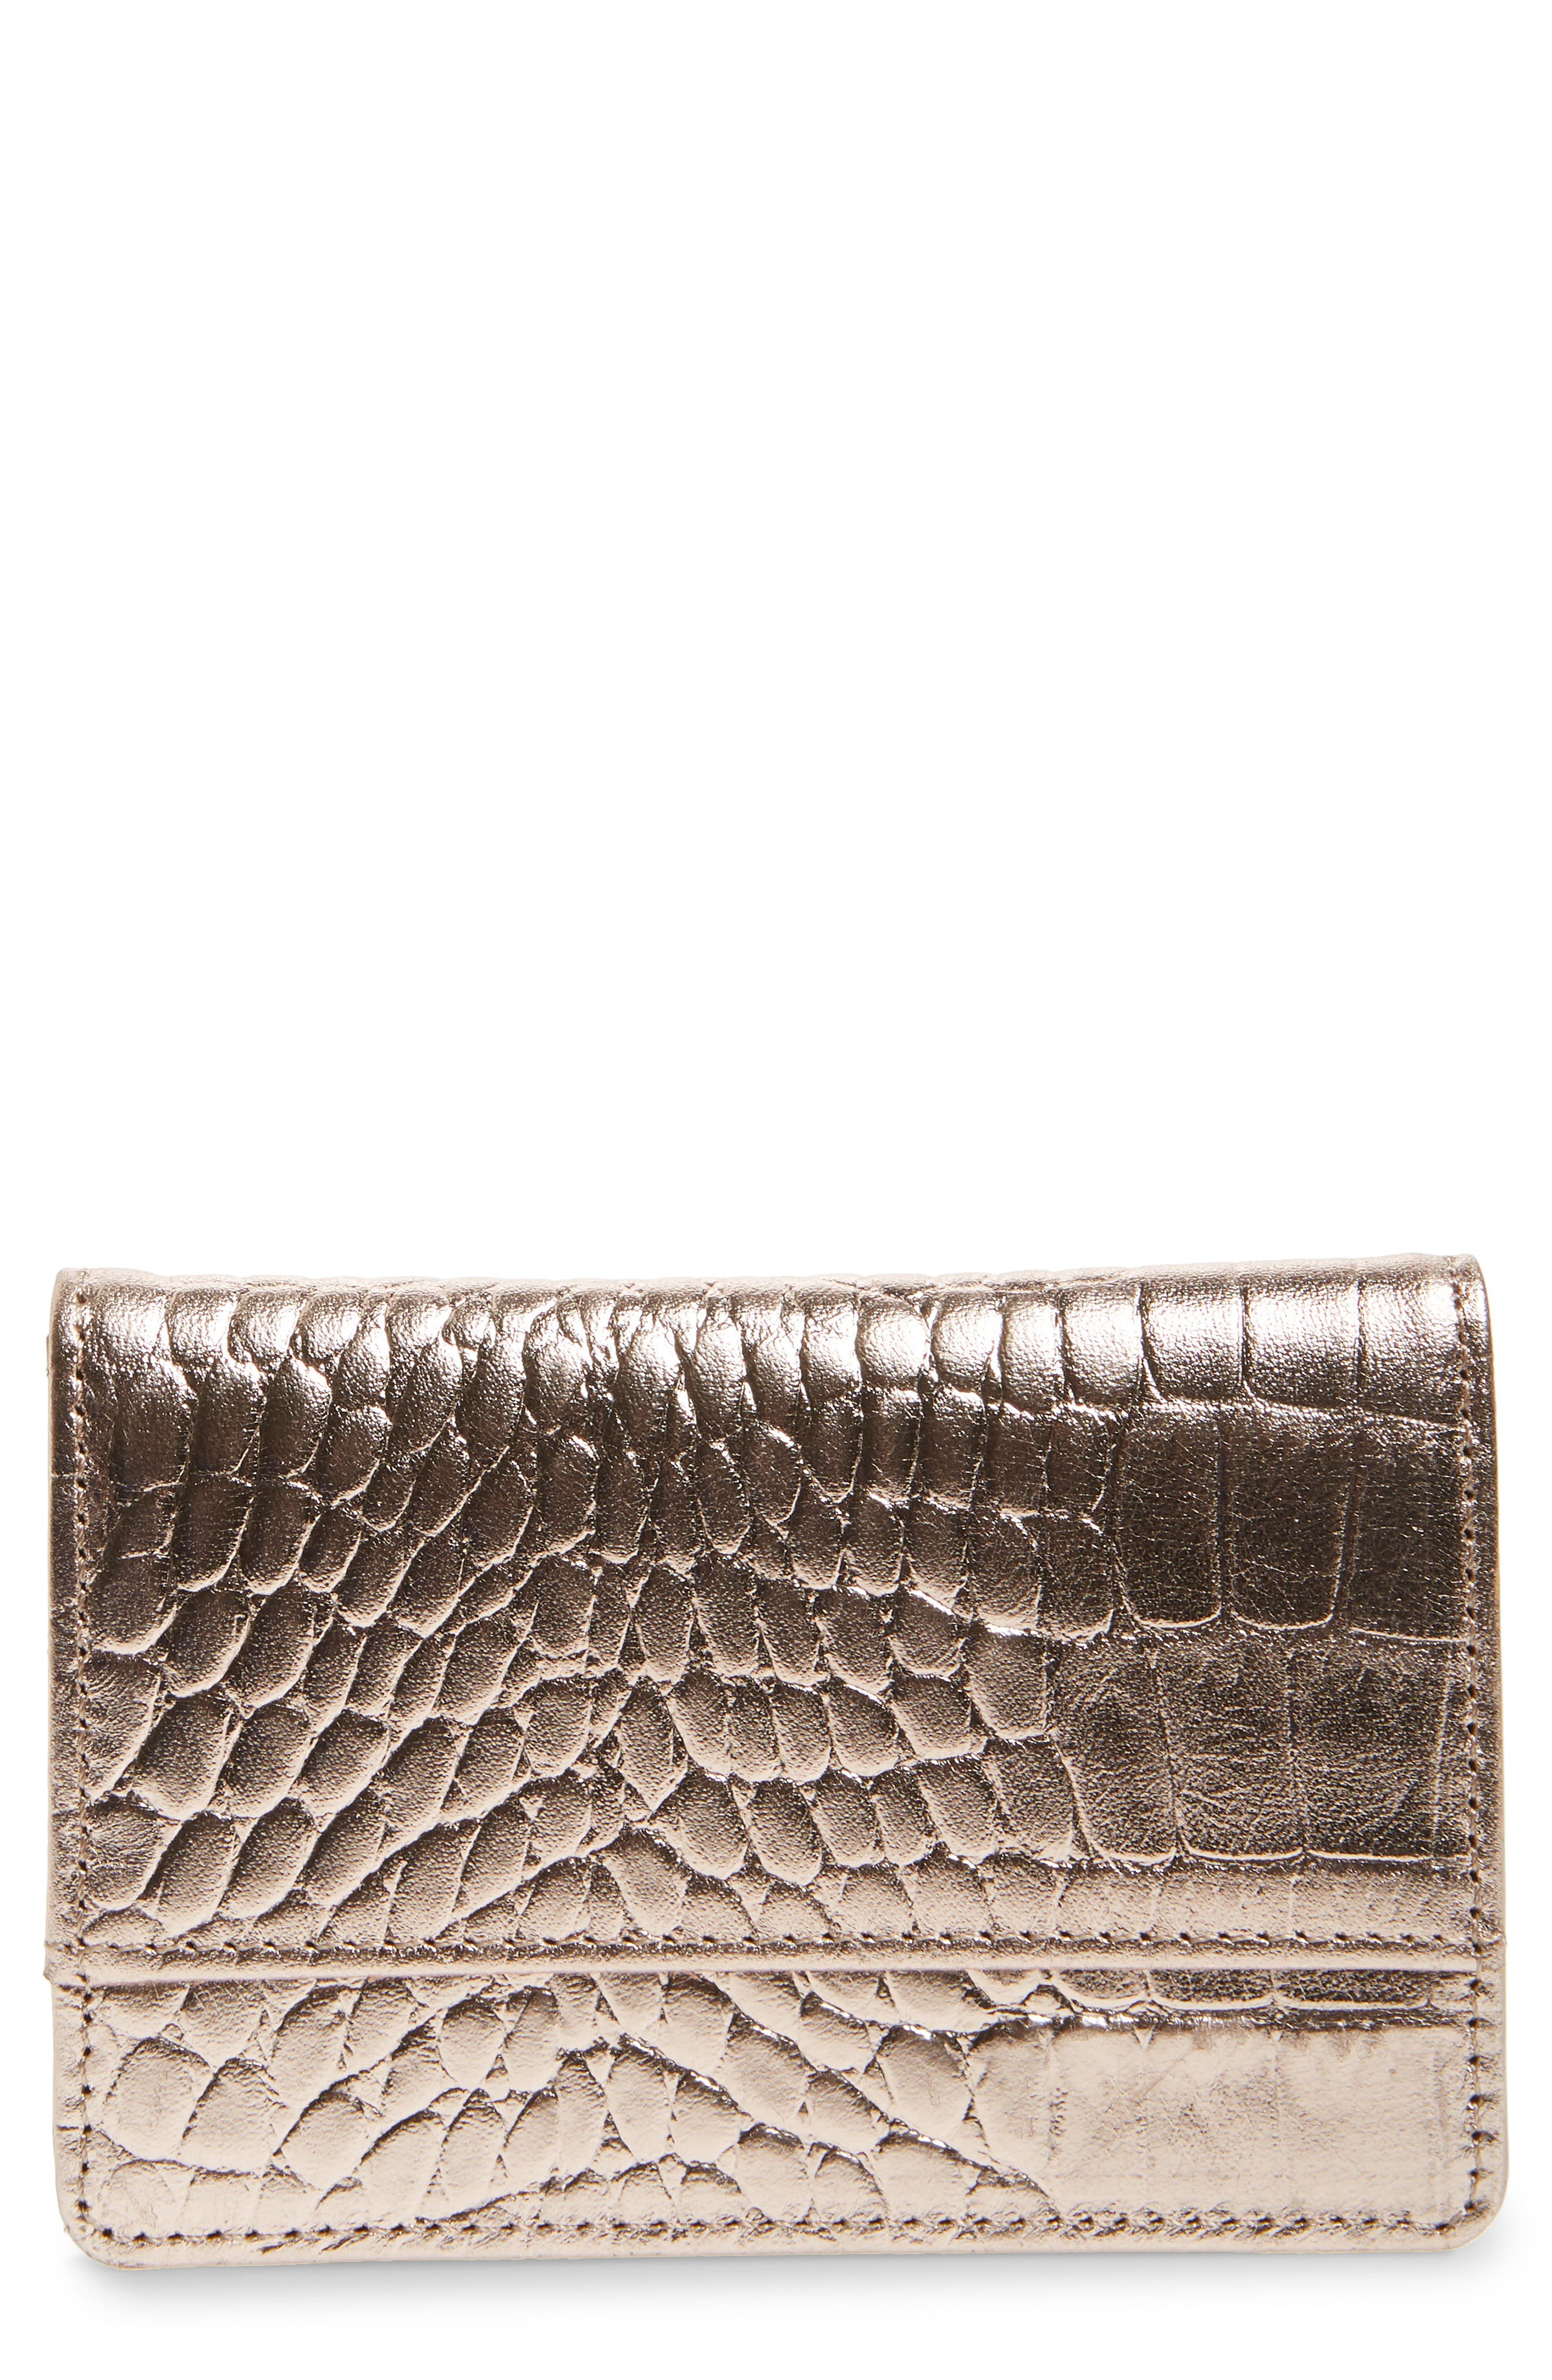 Ruby Croc Embossed Leather Cardholder,                             Main thumbnail 1, color,                             PINK DUST